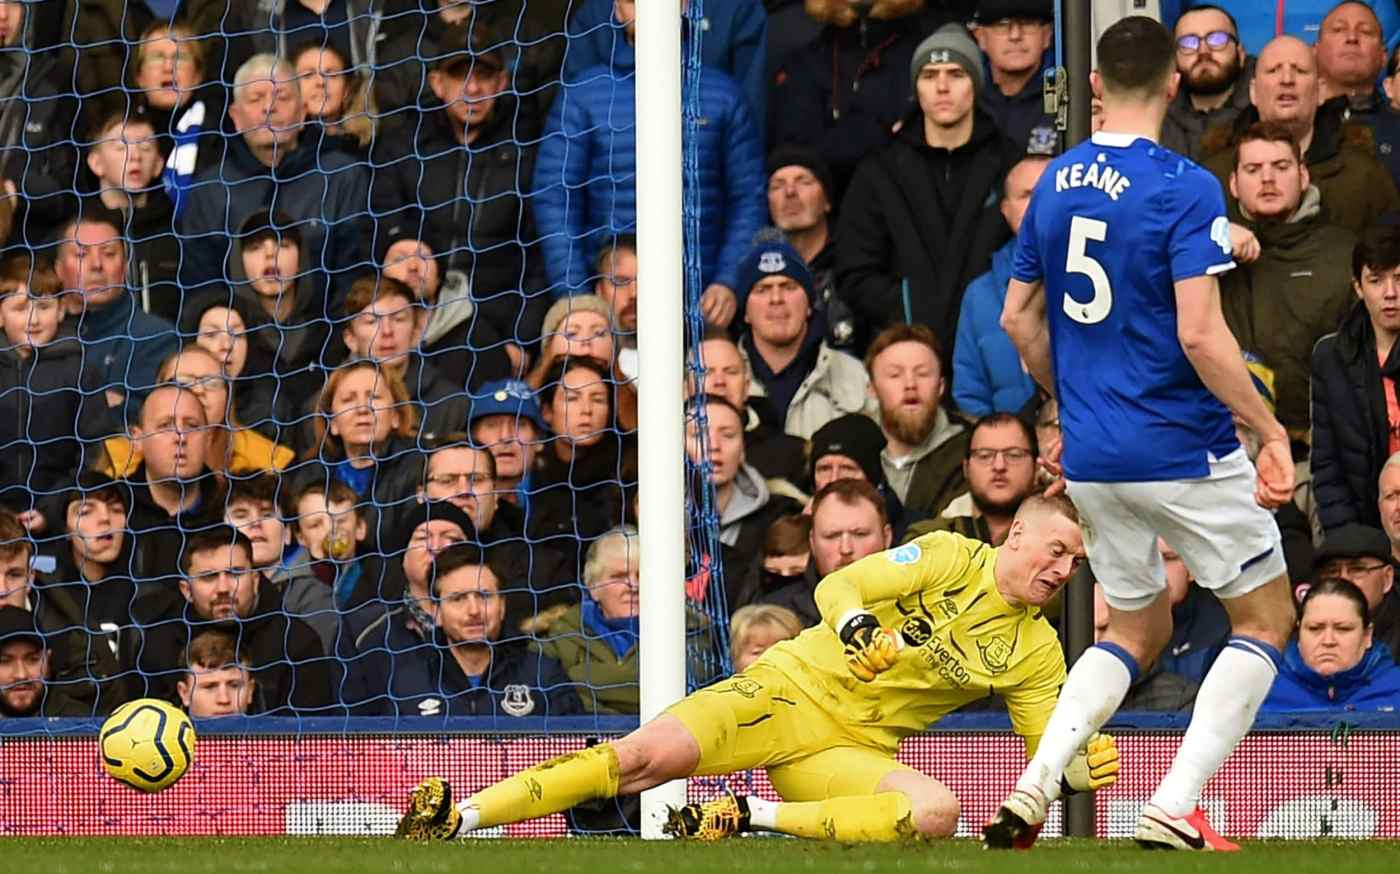 Pickford concedes an equaliser against Crystal Palace